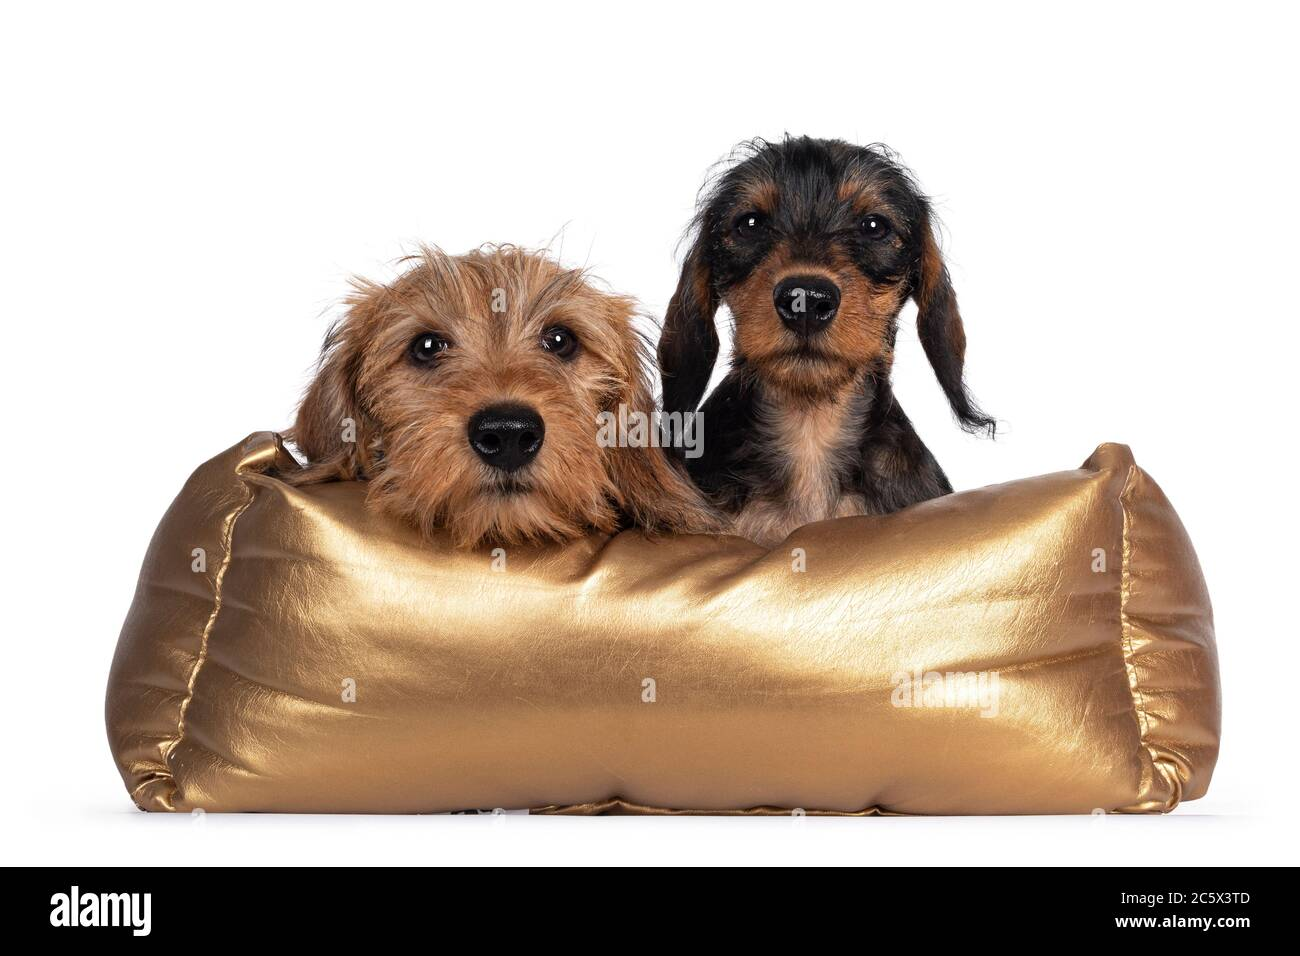 Two Adorable Wirehair Kanninchen Dachshund Puppies Laying Over Edge And Sitting In Golden Basket Looking Straight At Camera With Dark Shiny Eyes Is Stock Photo Alamy